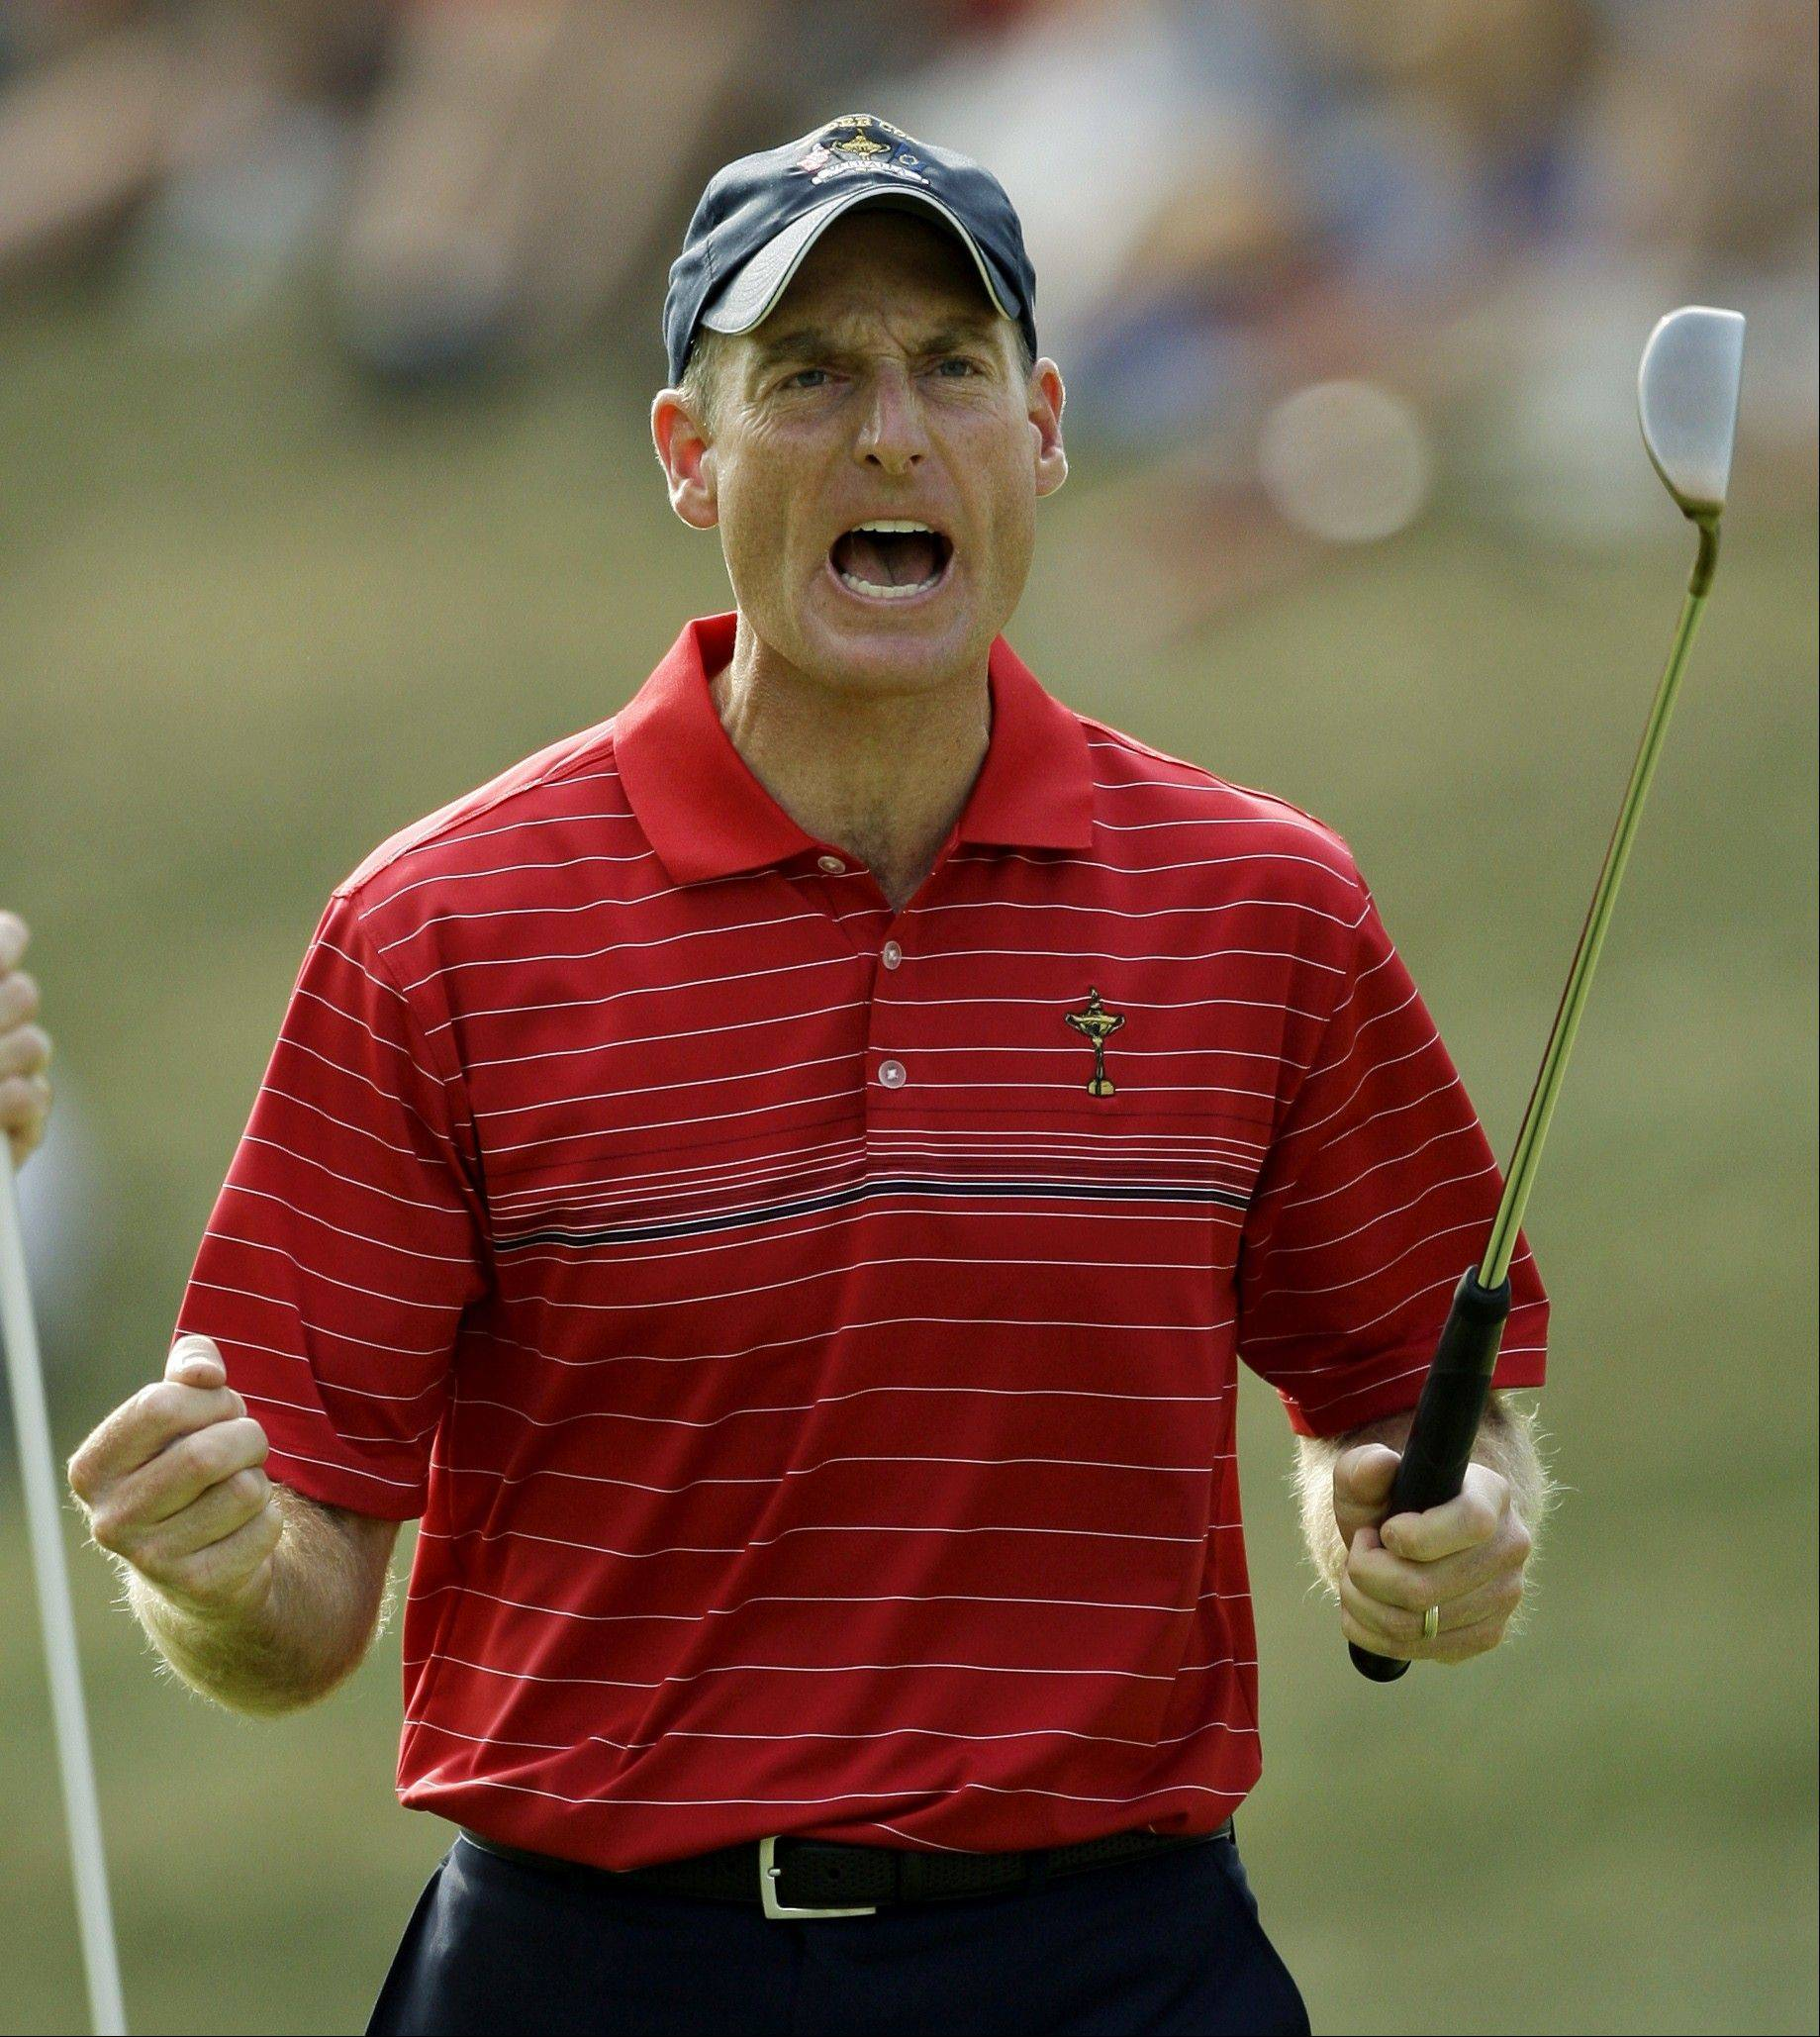 Jim Furyk celebrates after sinking a putt in the final round of the 2008 Ryder Cup at Valhalla Golf Club in Louisville. That was the last victory for the U.S. team.